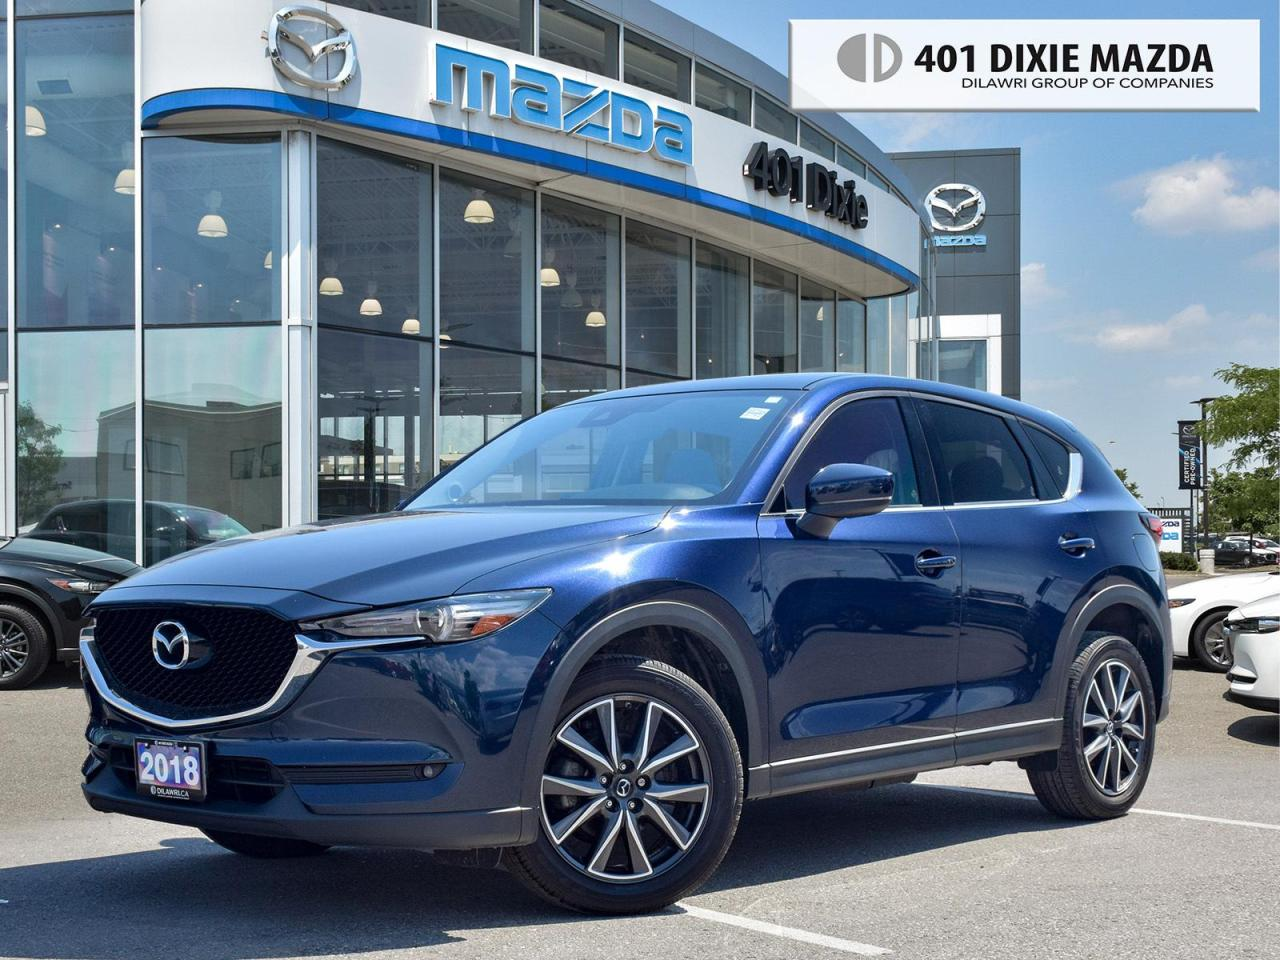 used 2018 mazda cx-5 gt one owner no accidents 1.99 financing availab for sale in mississauga, ontario carpages.ca